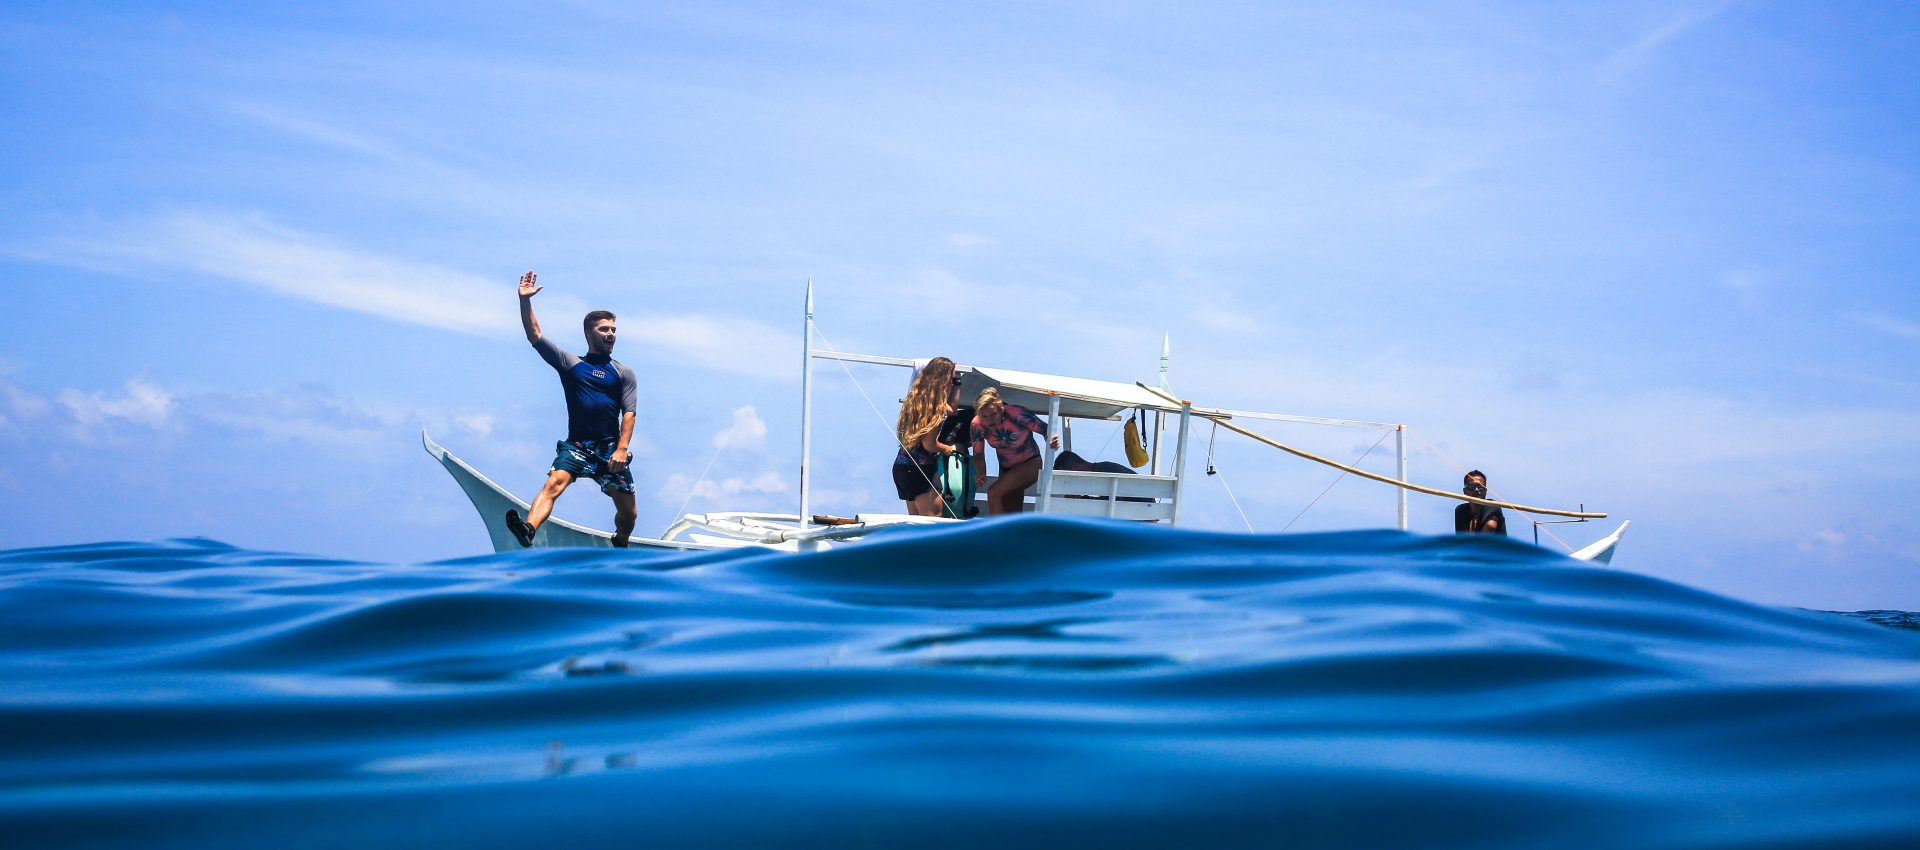 Going surfing is always amazing, but going surfing with a private boat is always better.